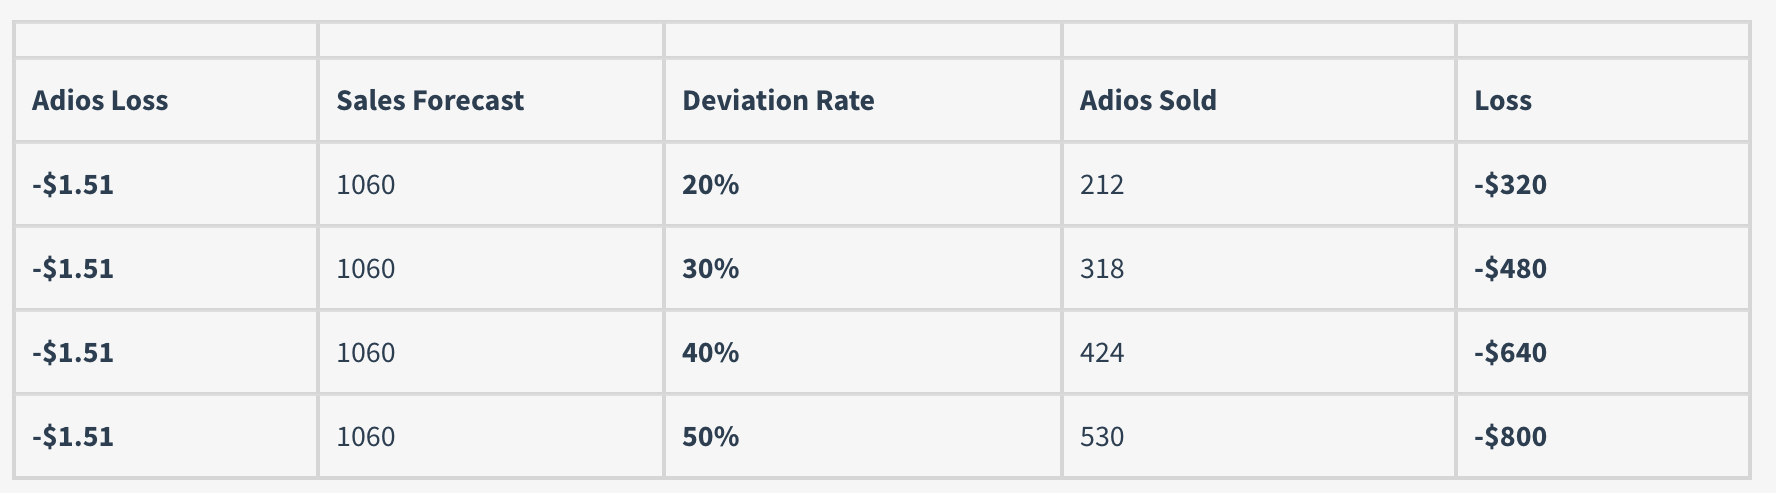 The average loss expectancy caused by cocktail deviation rates due to over pouring and liquor substitution is staggering. A bartender with a twenty percent cocktail deviation rate losses $1.51 per 212 Adios transactions totaling -$320 loss annually. In reality, cocktail deviation rates among bartenders is much higher. Average cocktail deviation rates among high volume nightclub bartenders range between 30% and 40%. A 40% cocktail deviation rate yields -$640 loss annually. Your annual loss compounds quickly when you realize this loss only reflects one cocktail. Your product mix exceeds 90 cocktails.